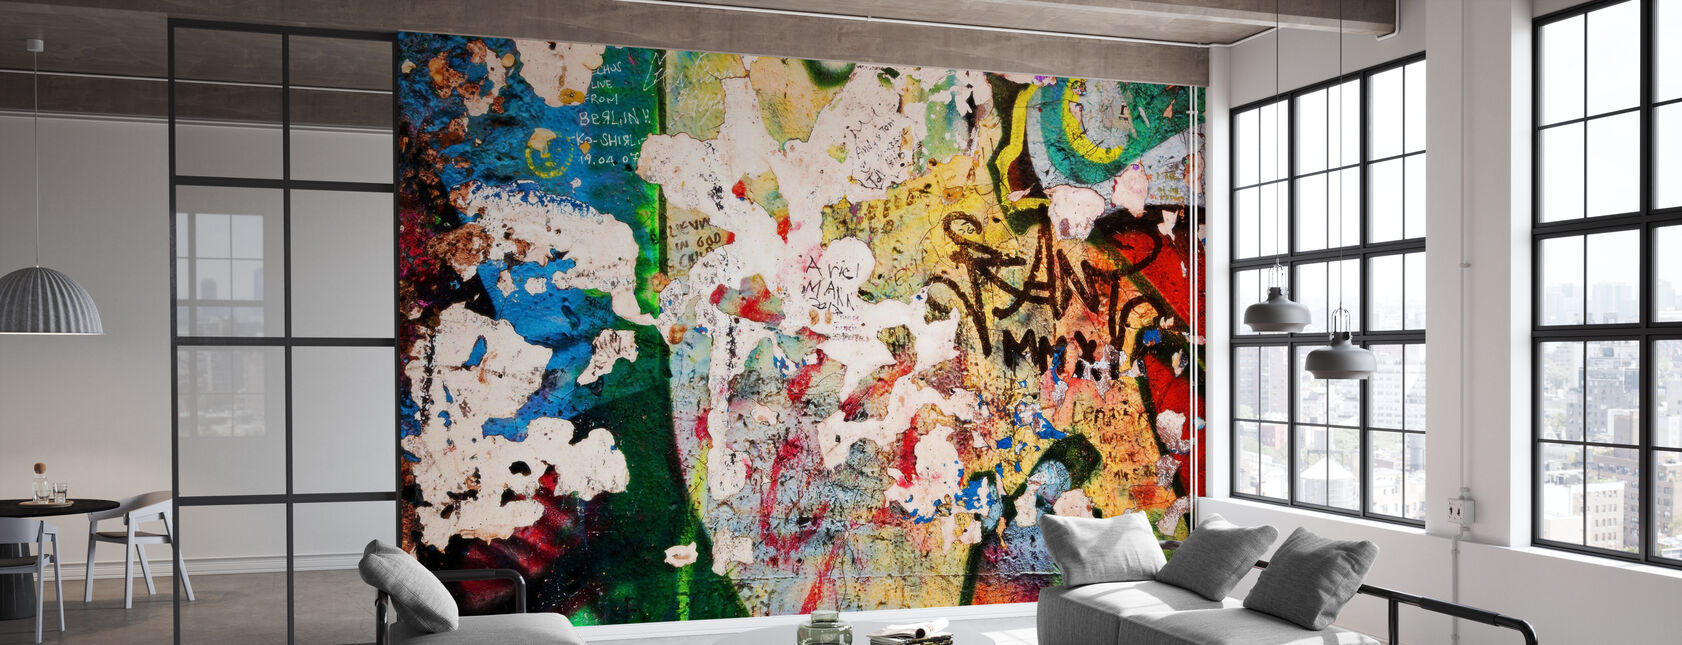 Part of Berlin Wall with Grunge Graffiti - Potsdamer Platz - Wallpaper - Office